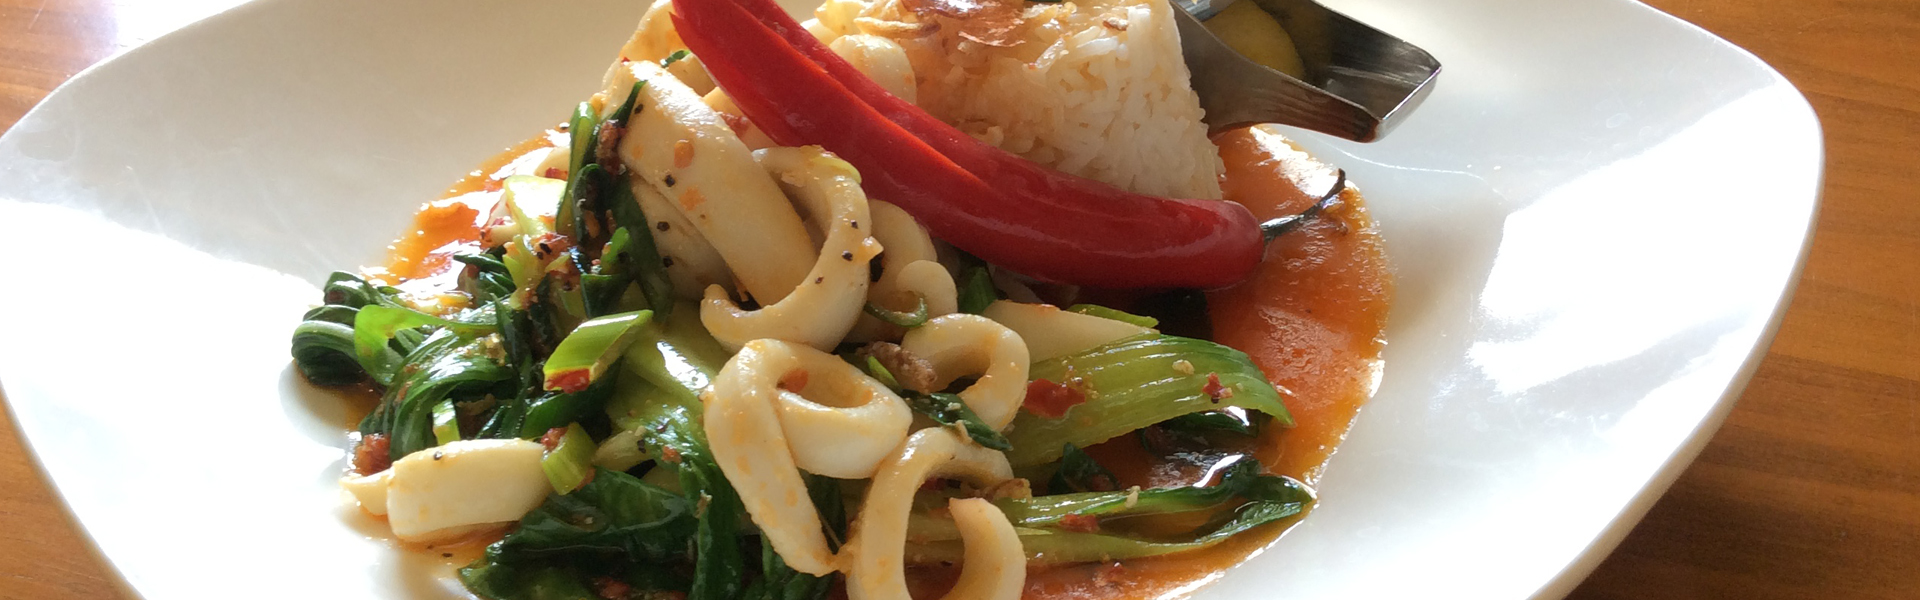 Inland Sea Restaurant fresh sauteed squid with bok choy